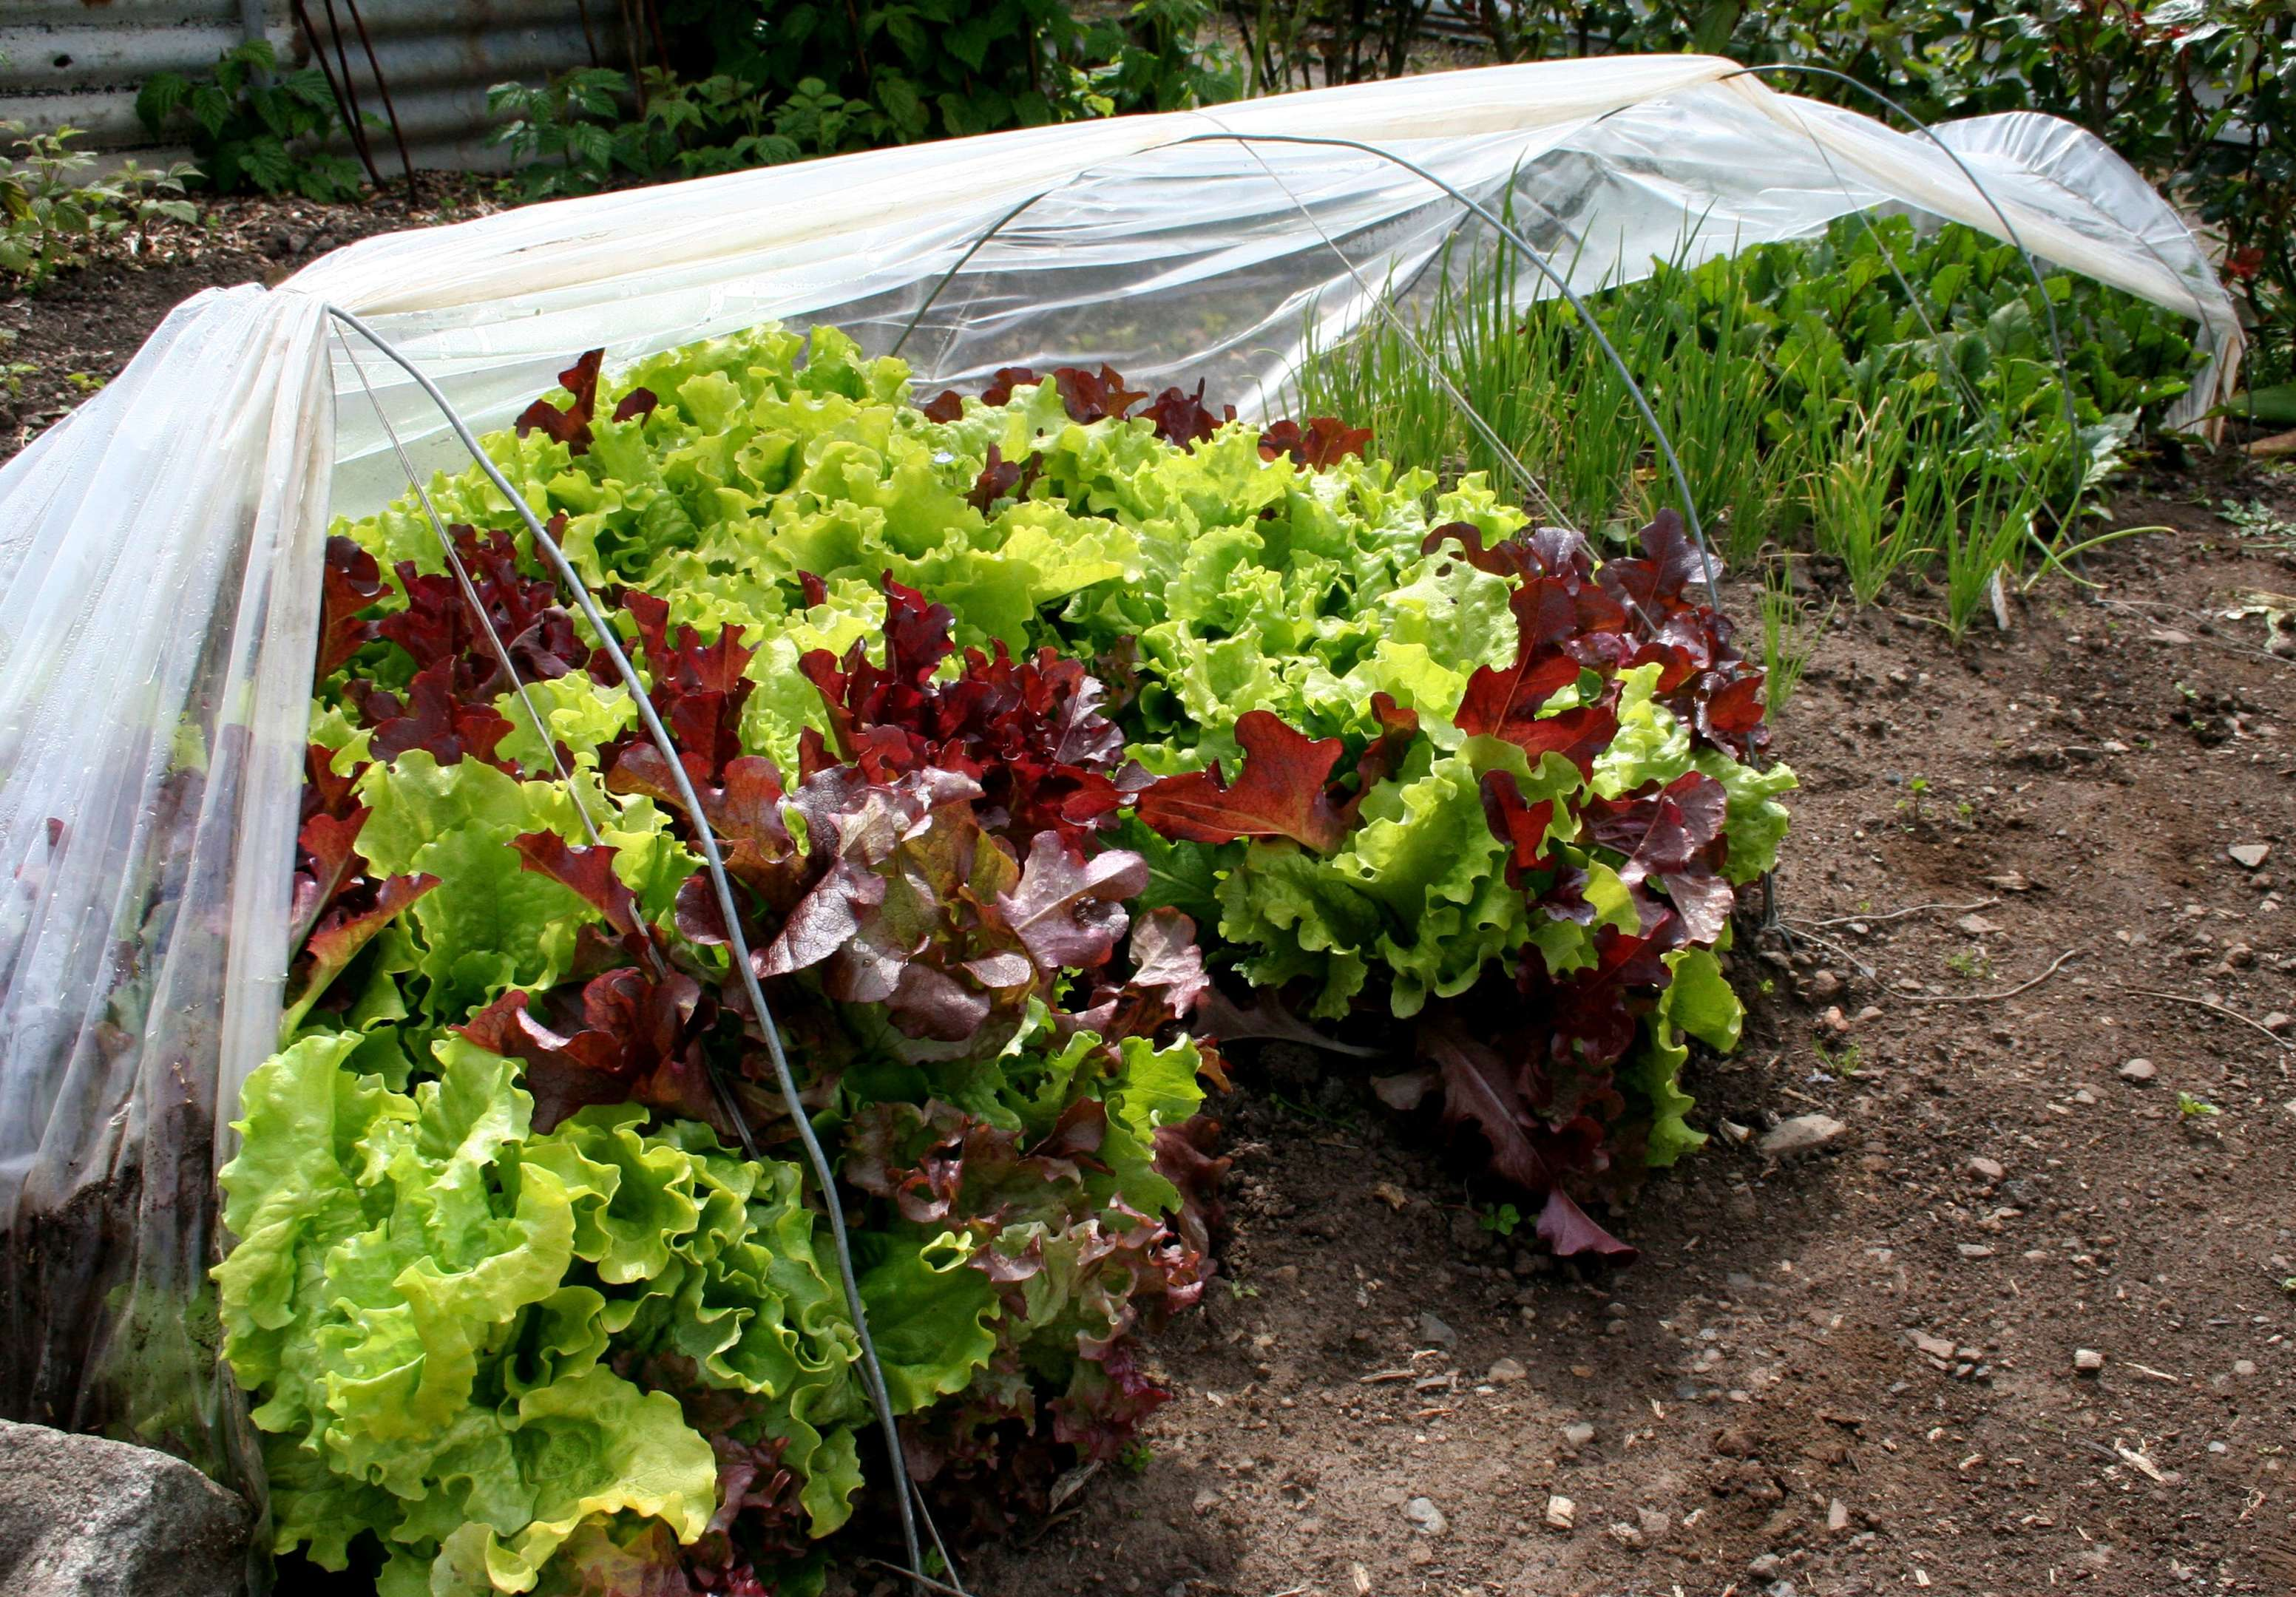 Early salads growing under tunnels.